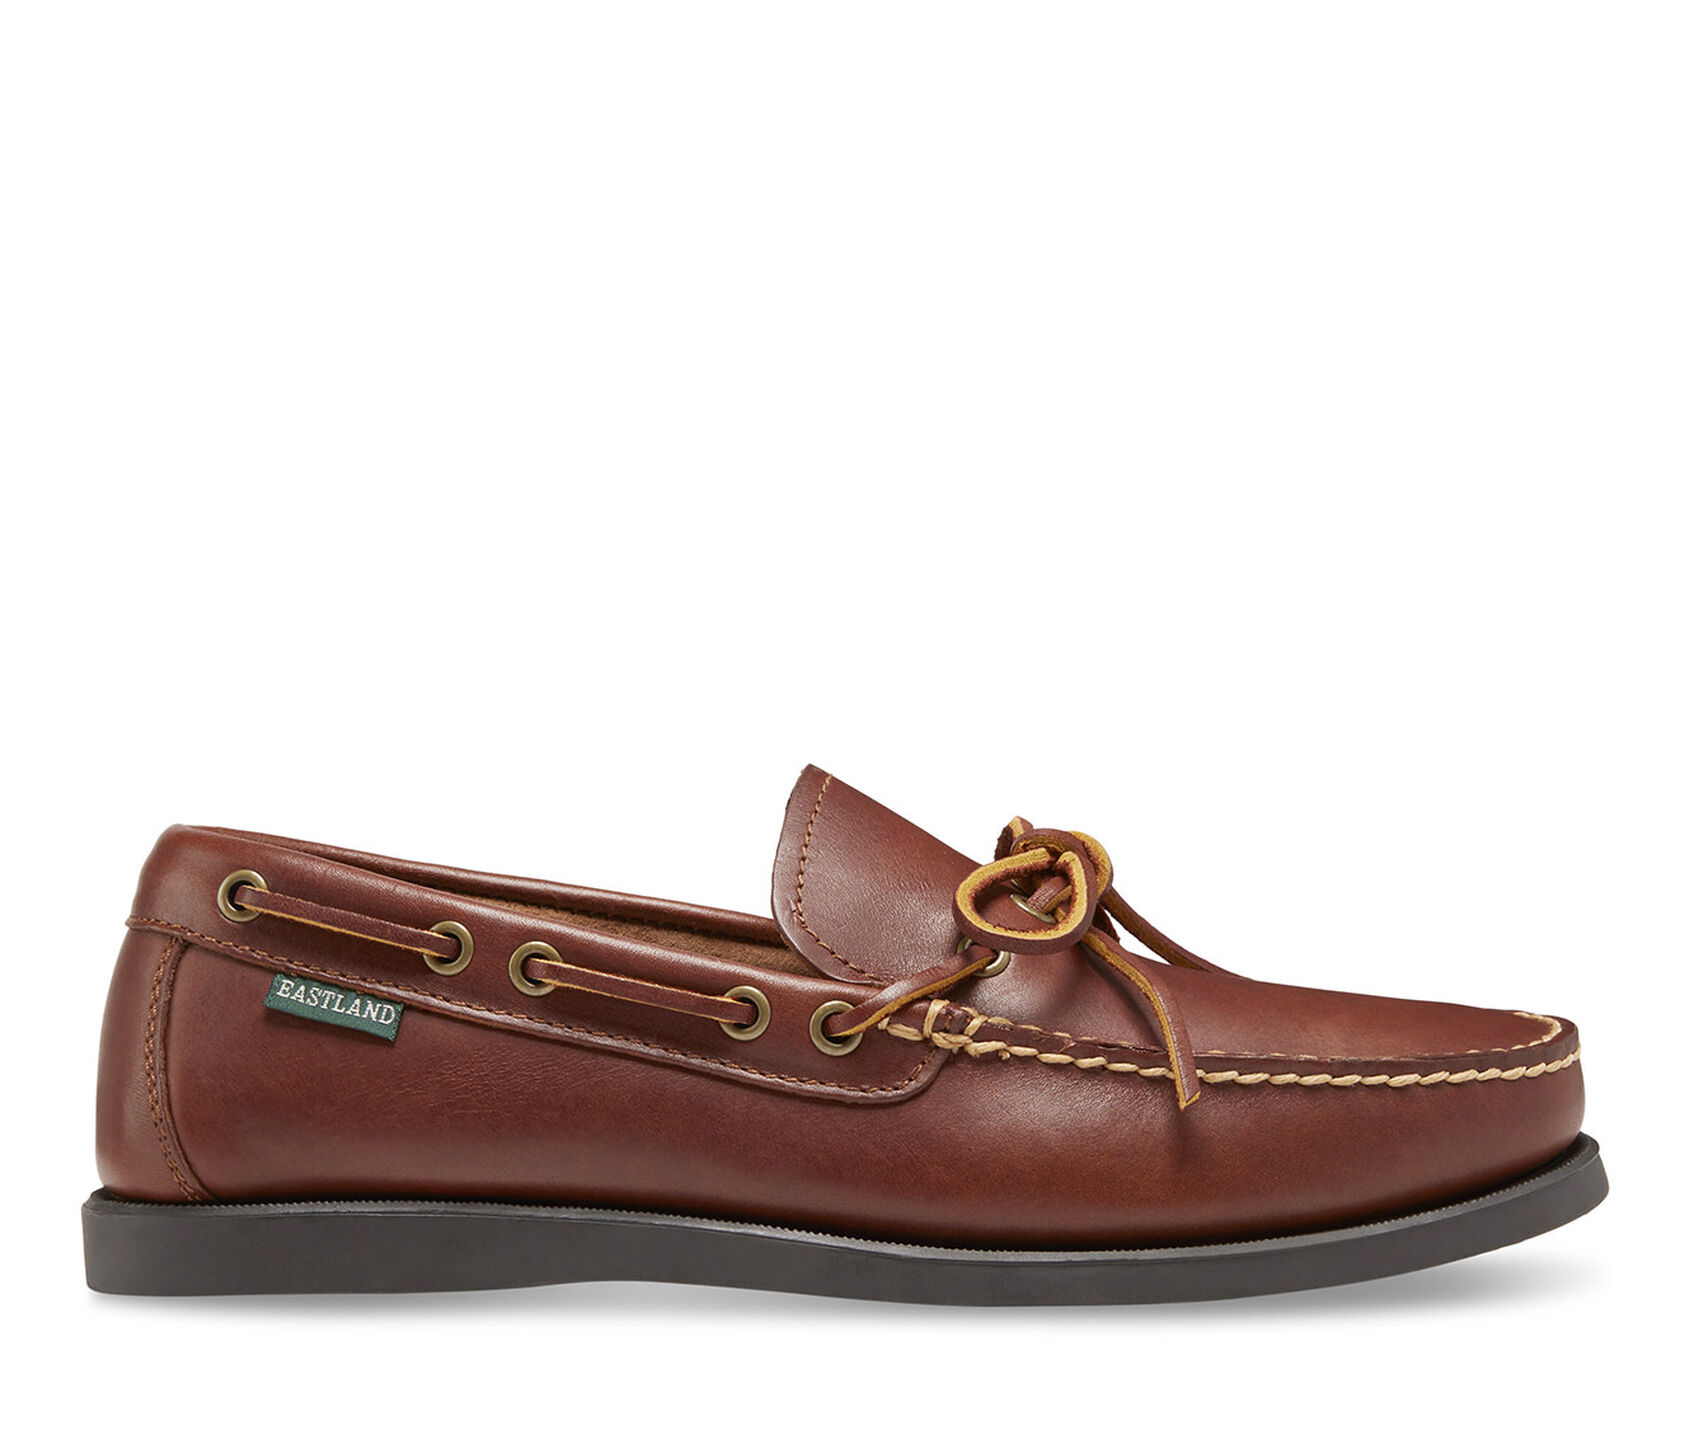 7166c2e8c9 ... Eastland Yarmouth Boat Shoes. Previous